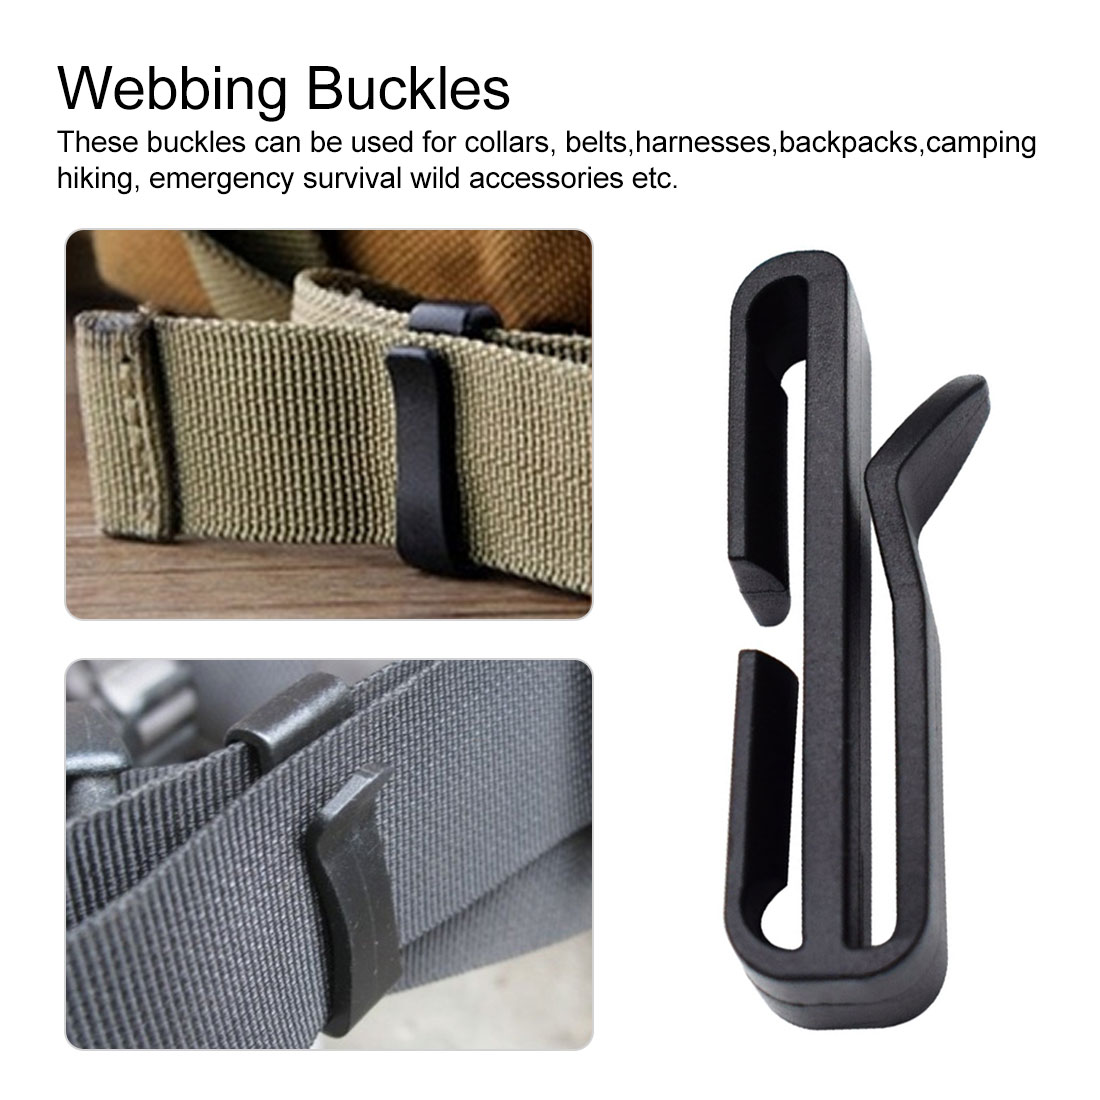 Camping Accessary  Backpack Buckle 2pcs Plastic Buckle Quick Slip Keeper Webbing Ending Clips Adjusting Strap Belt Backpack